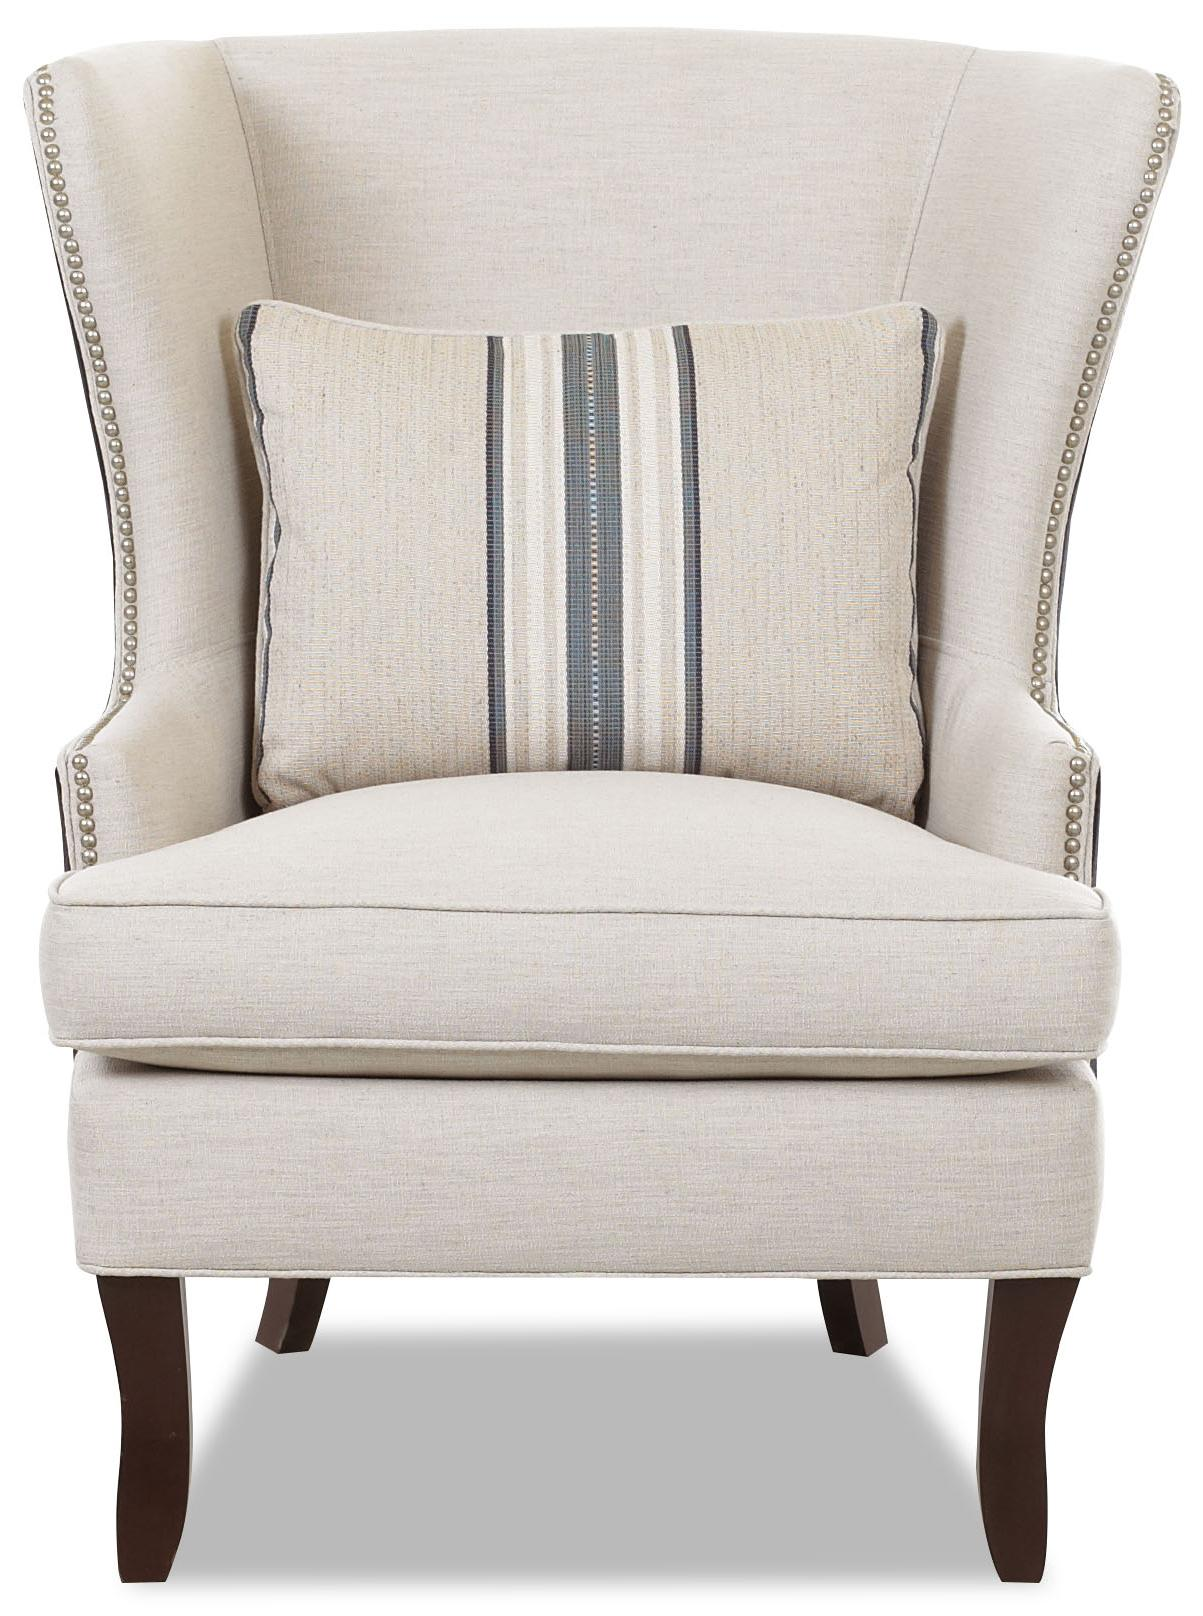 Chairs and Accents Krauss Accent Chair by Klaussner at Johnny Janosik